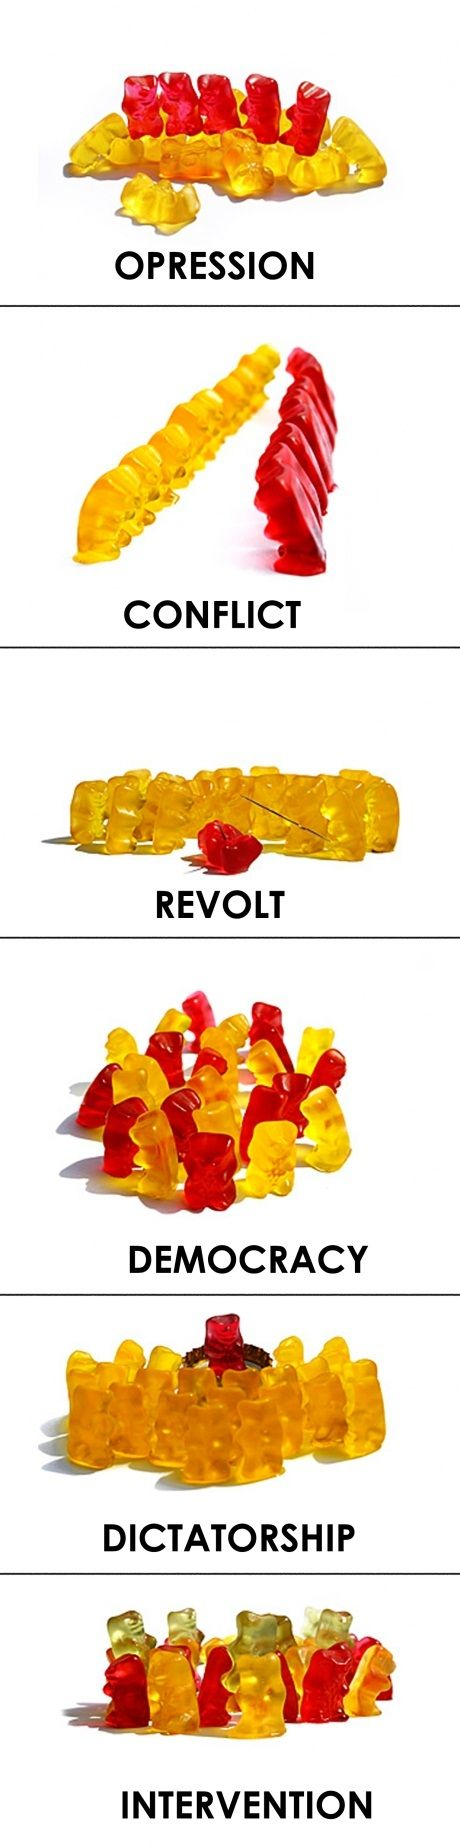 Teaching government systems with gummy bears.